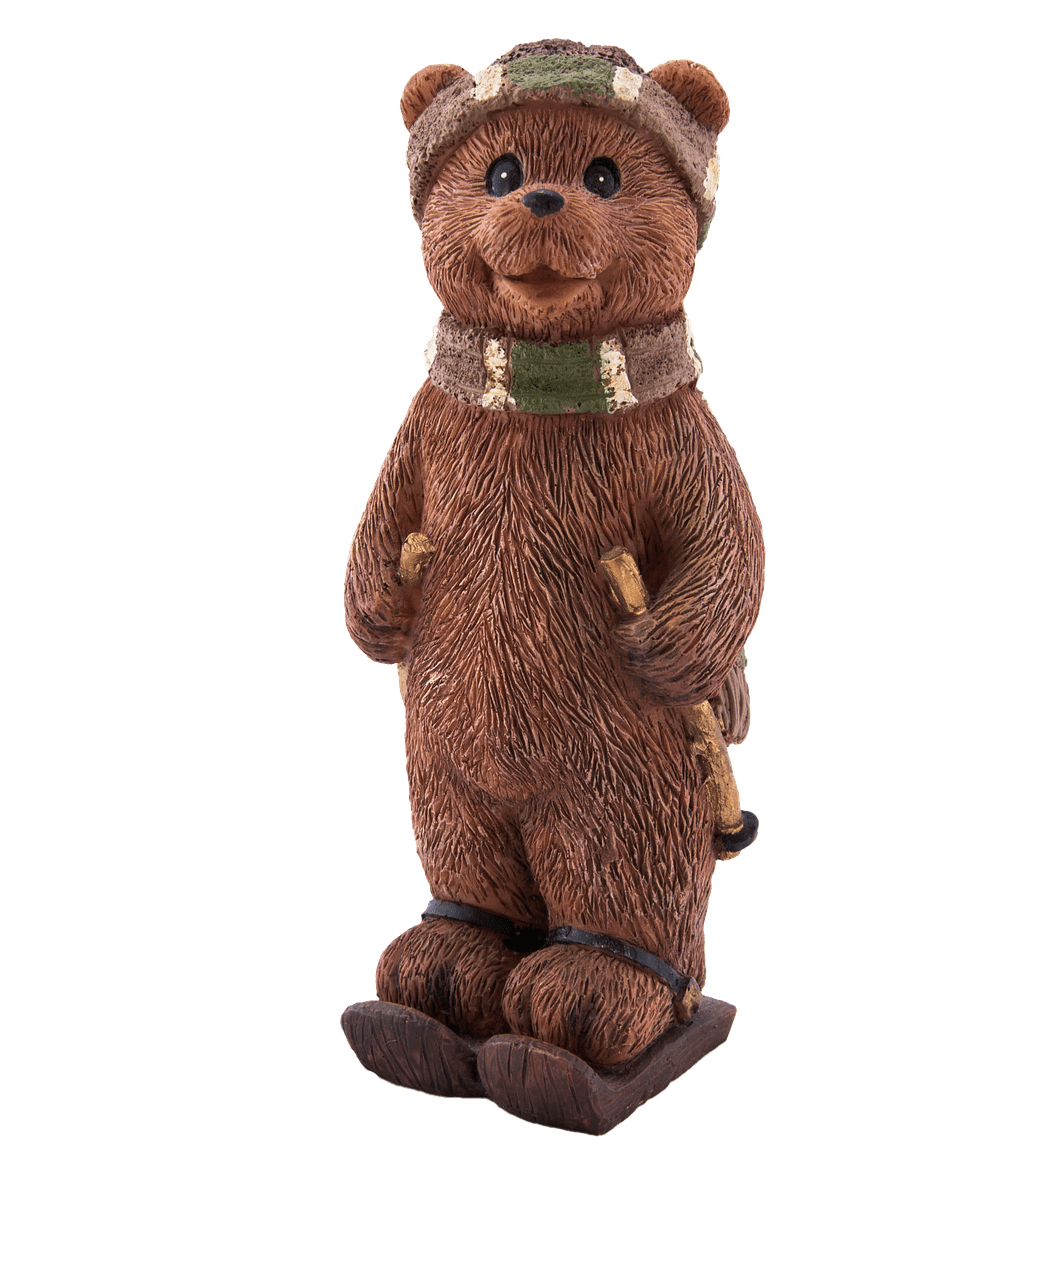 Clipart bear skiing. Toy transparent png stickpng